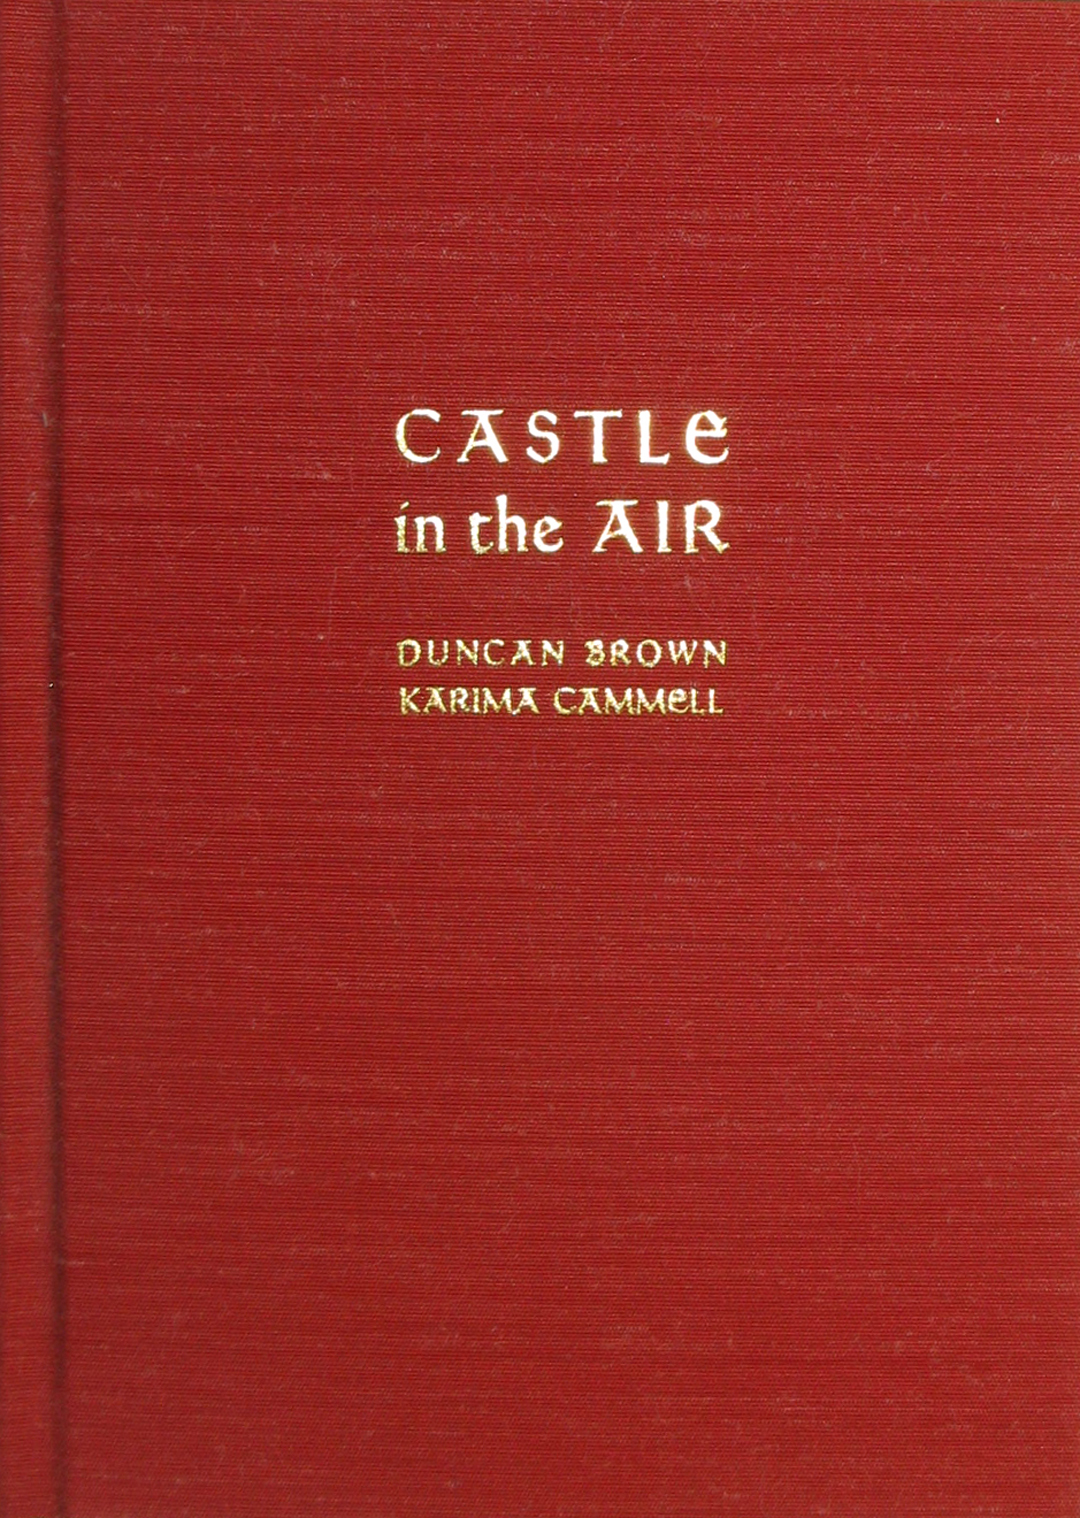 castle_in_the_air_book.jpg